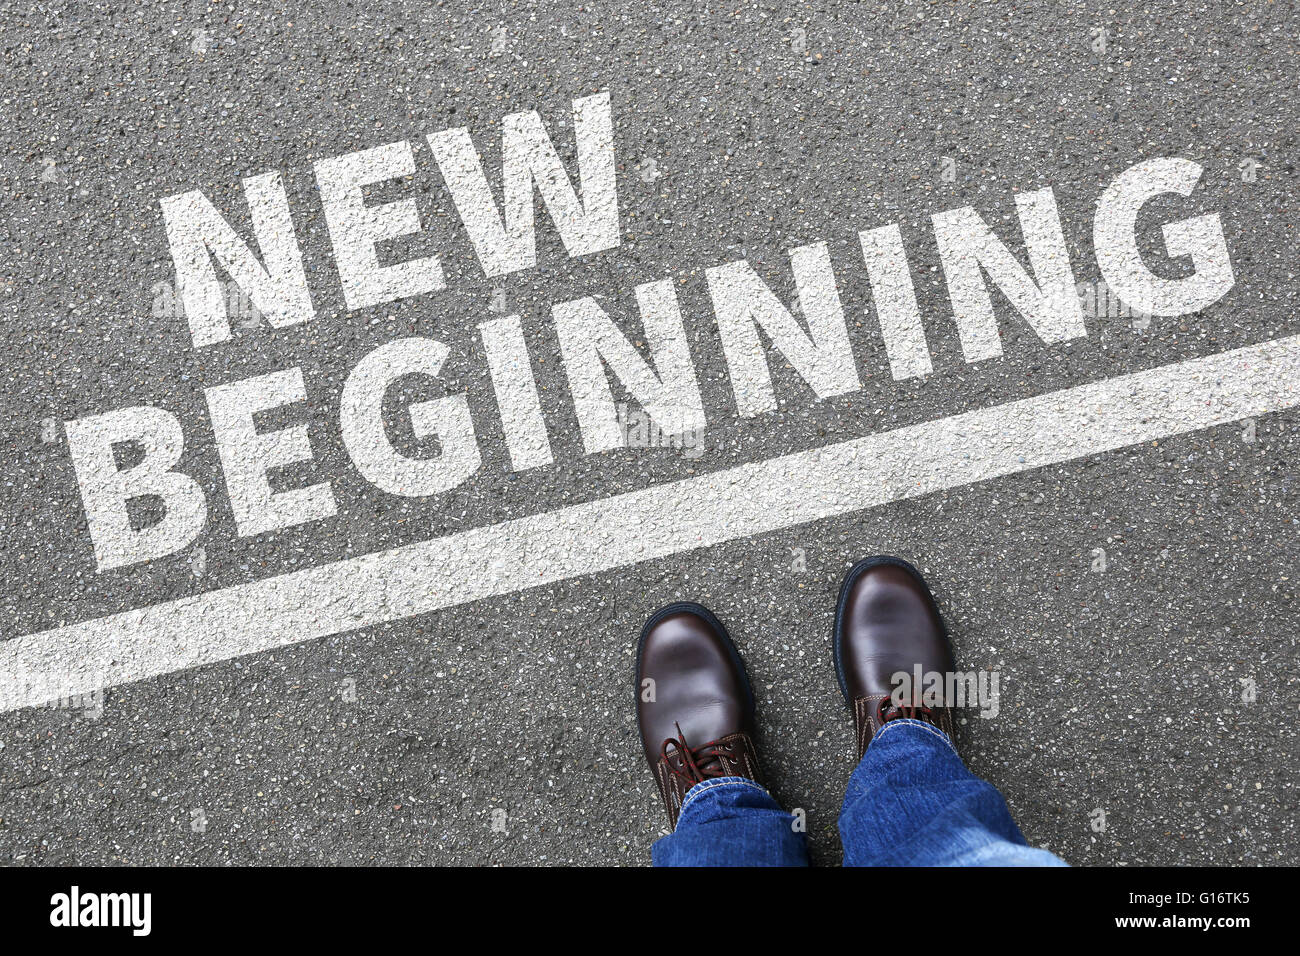 New beginning beginnings old life future past goals success decision change decide - Stock Image